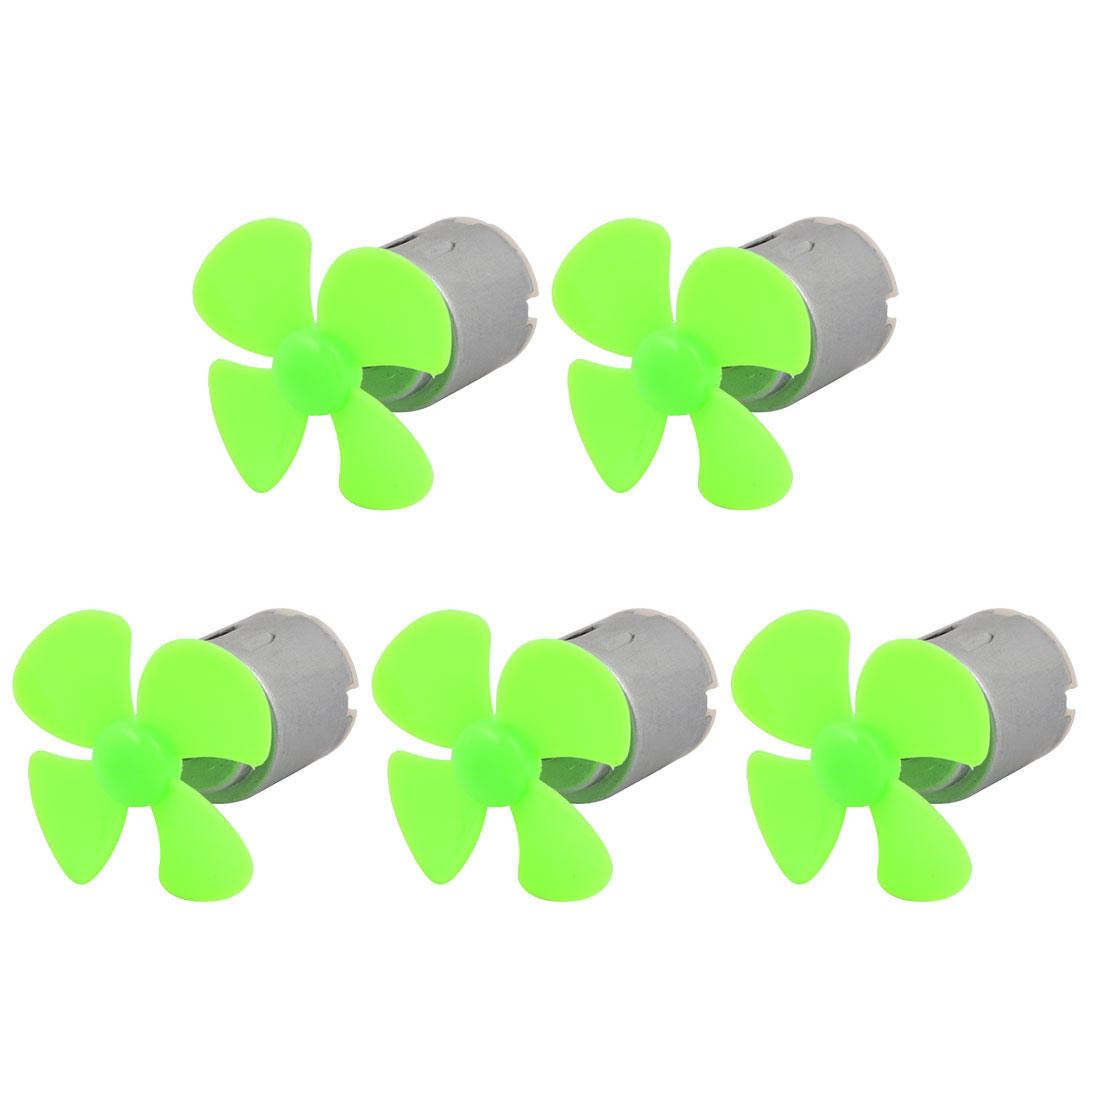 5pcs DC 3V 0.13A 17000RPM Strong Force Motor 4 Vanes 40mm Green Propeller for RC Aircraft